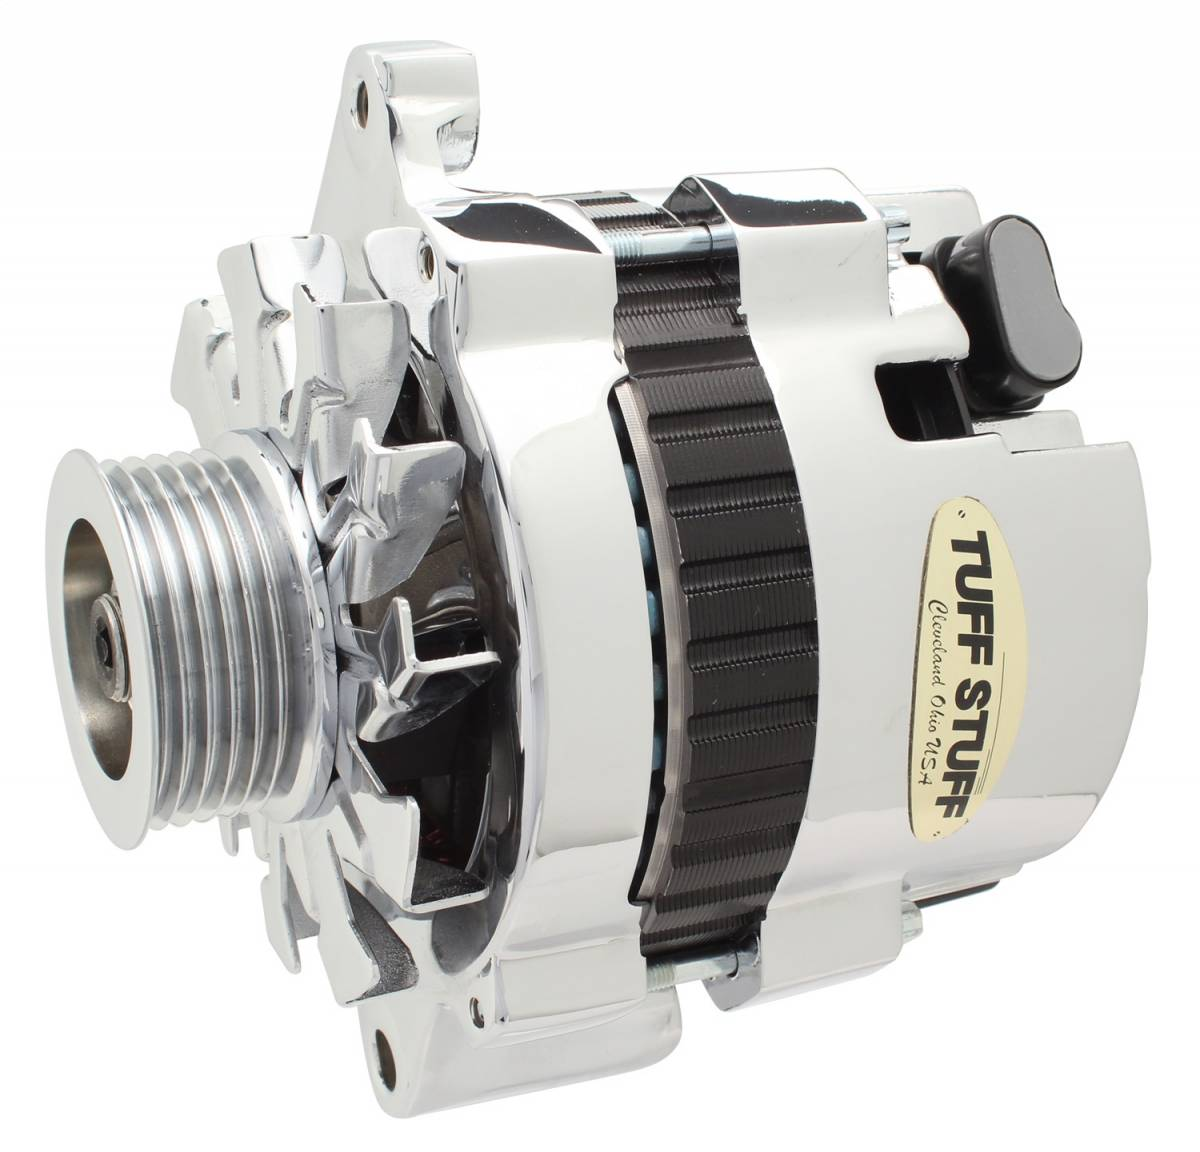 Tuff Stuff Performance - Alternator 120 AMP CS121 GM Style Mini Racer 1 Wire Or OEM Hookup 12 Volt 6G Groove Pulley Chrome Side Terminal For Use In GM Models 7937AST6G